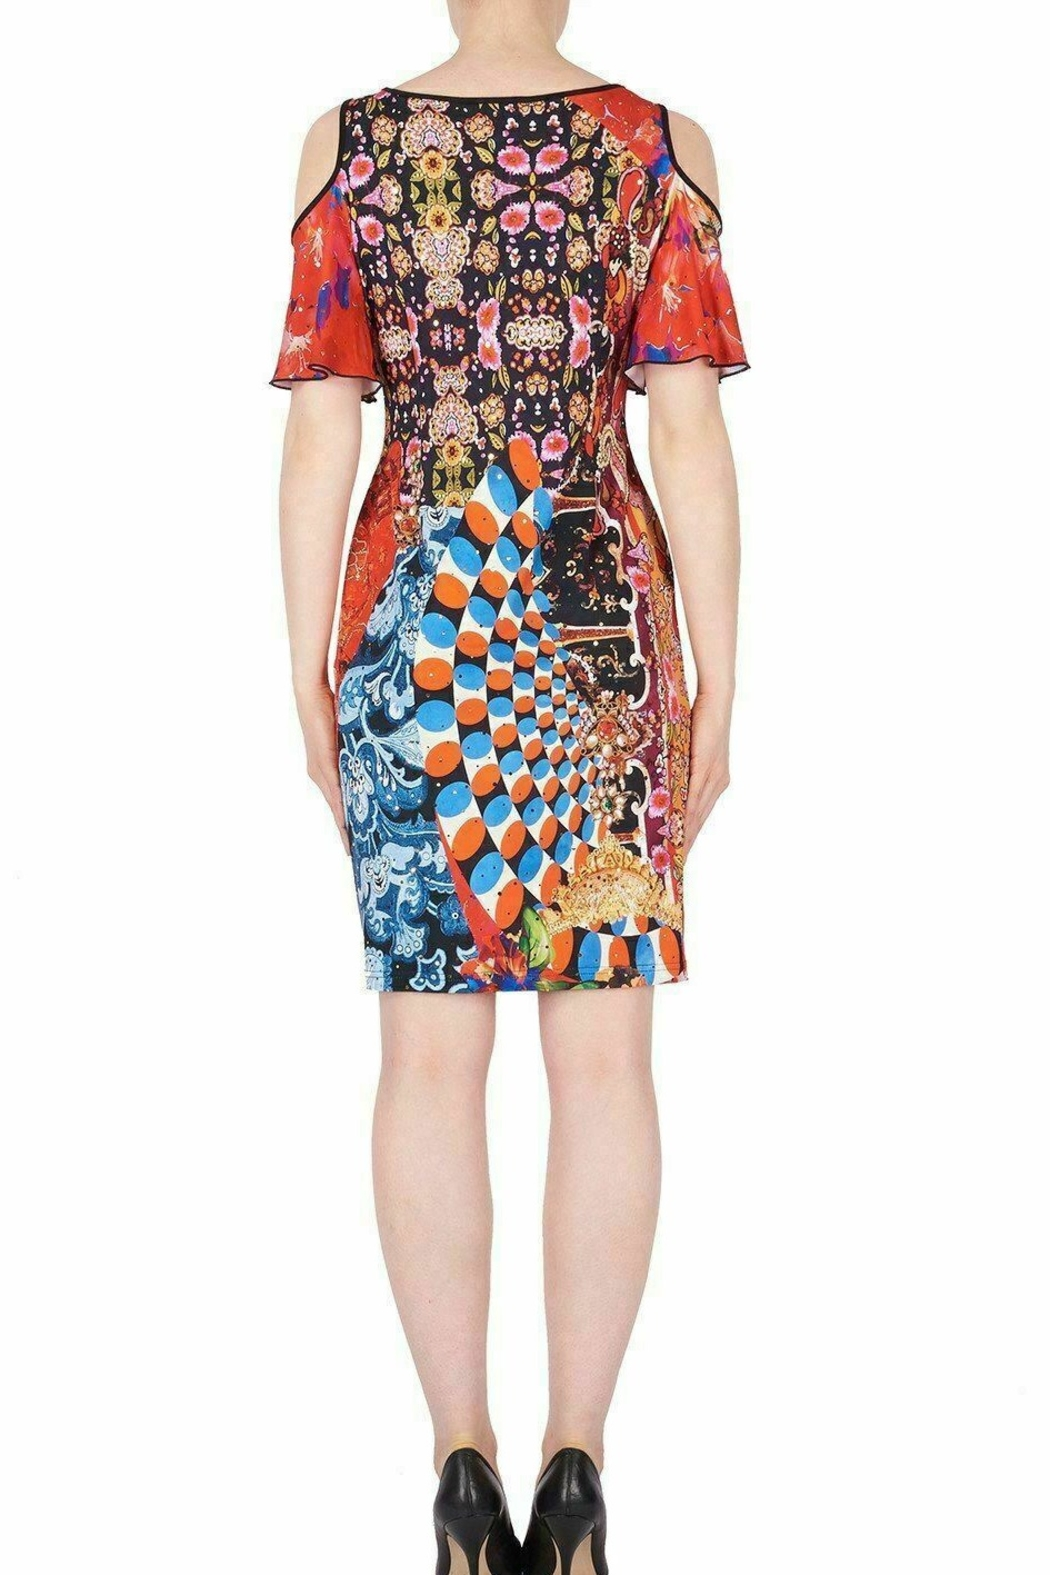 Joseph Ribkoff  Multicolored graphic print knee length dress - Front Full Image